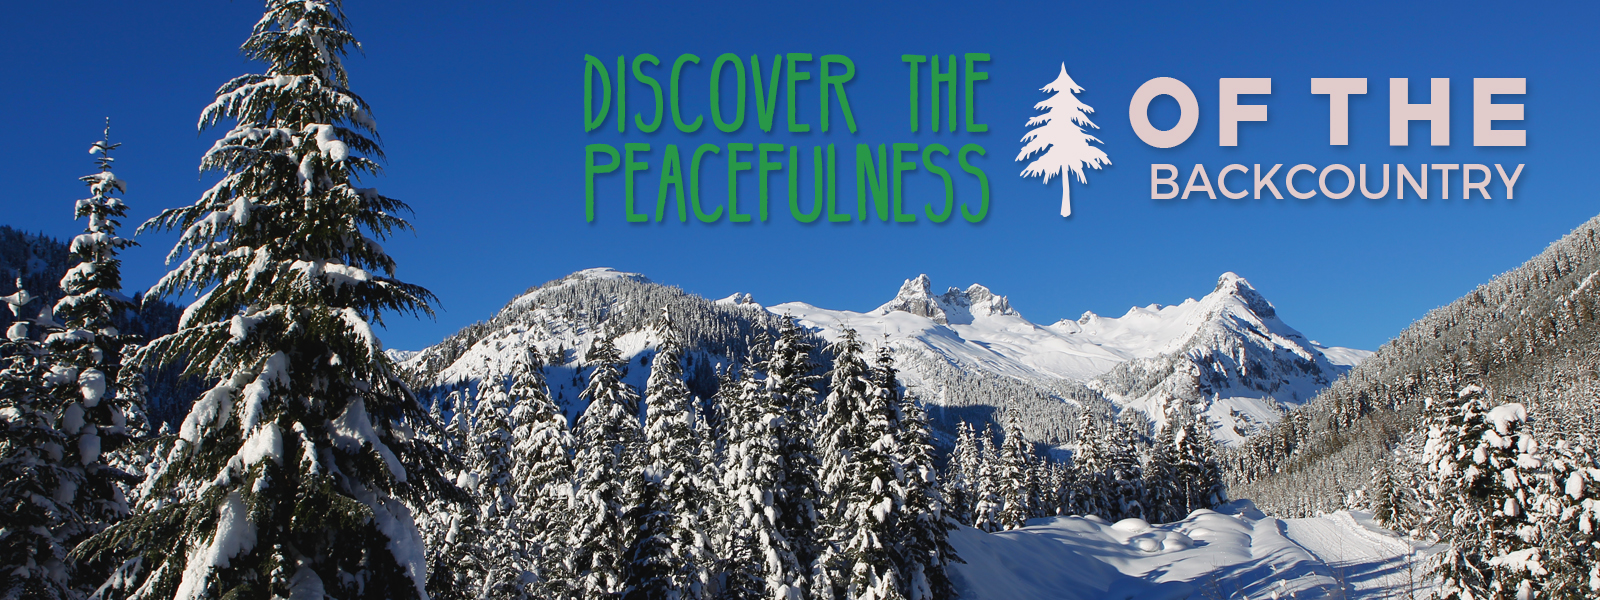 Discover the peacefulness of the backcountry